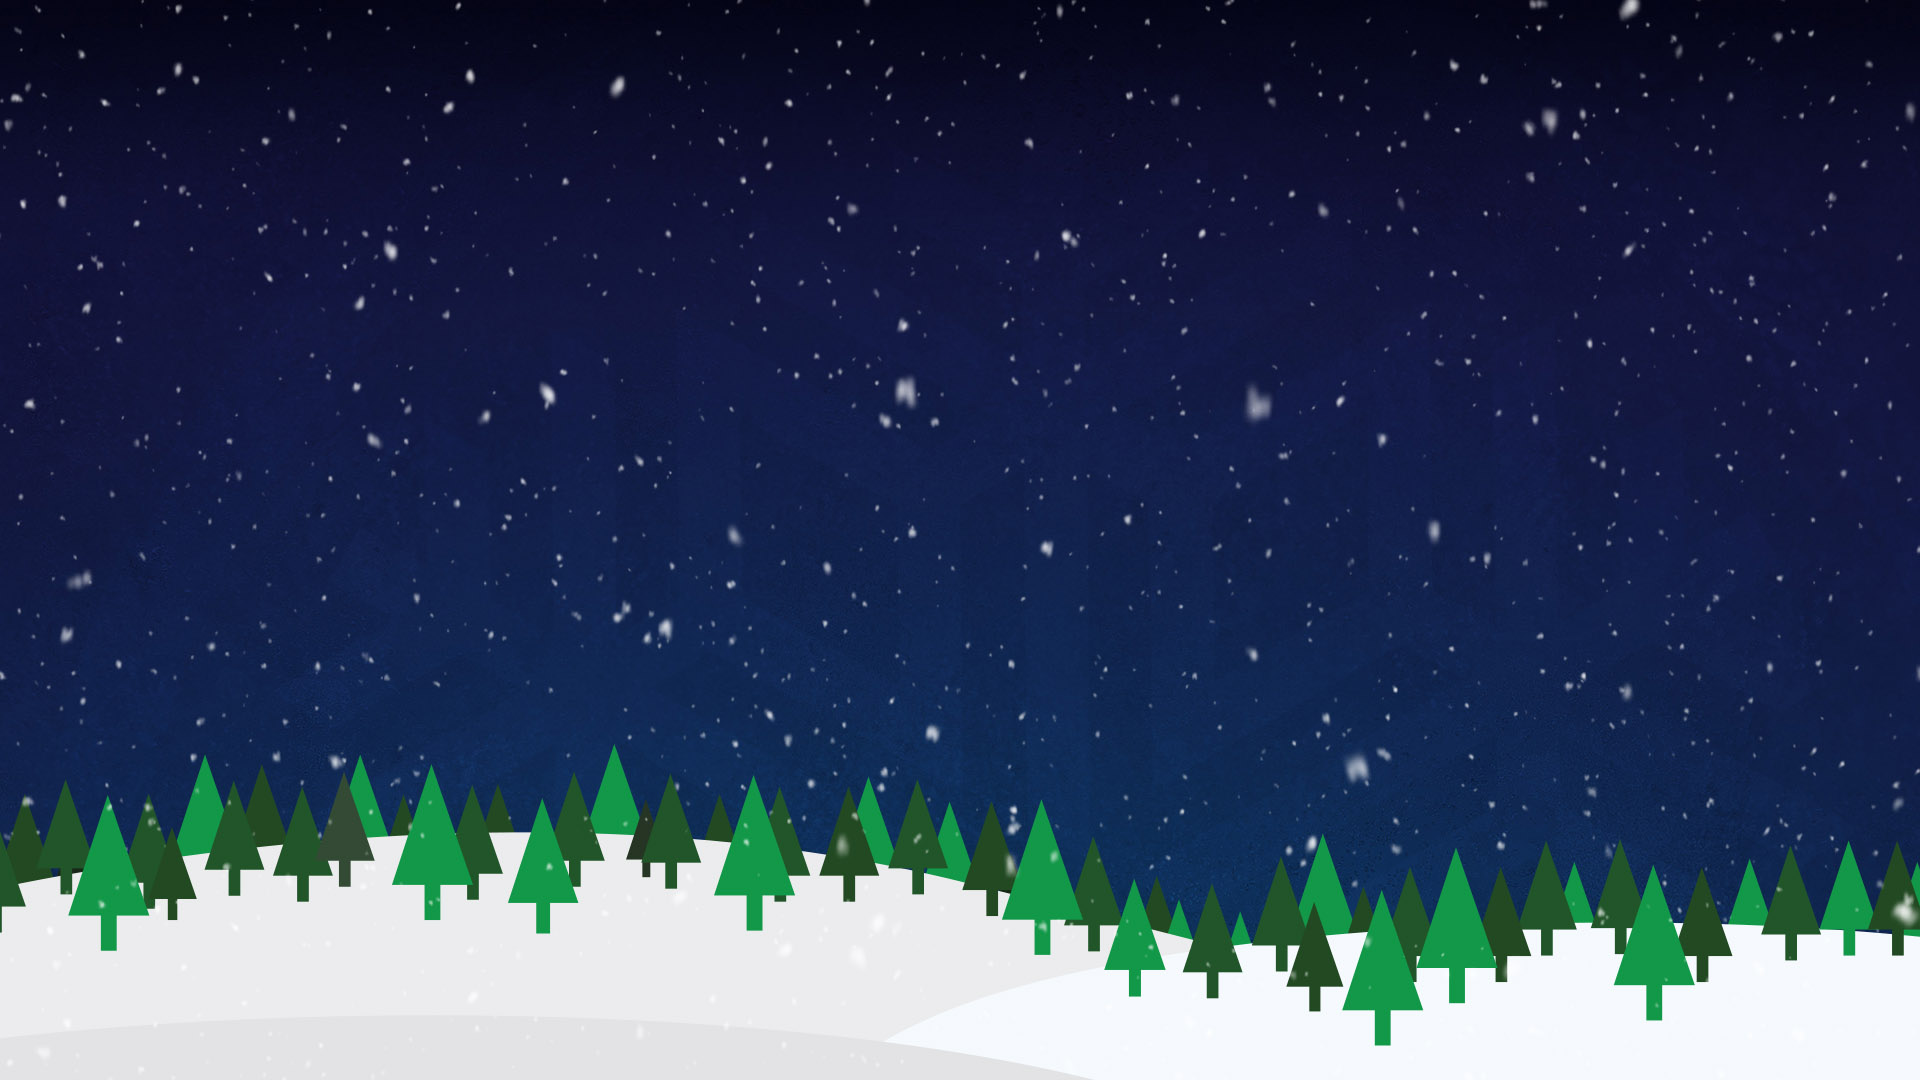 Snowy pine tree background image for the christmas skate event